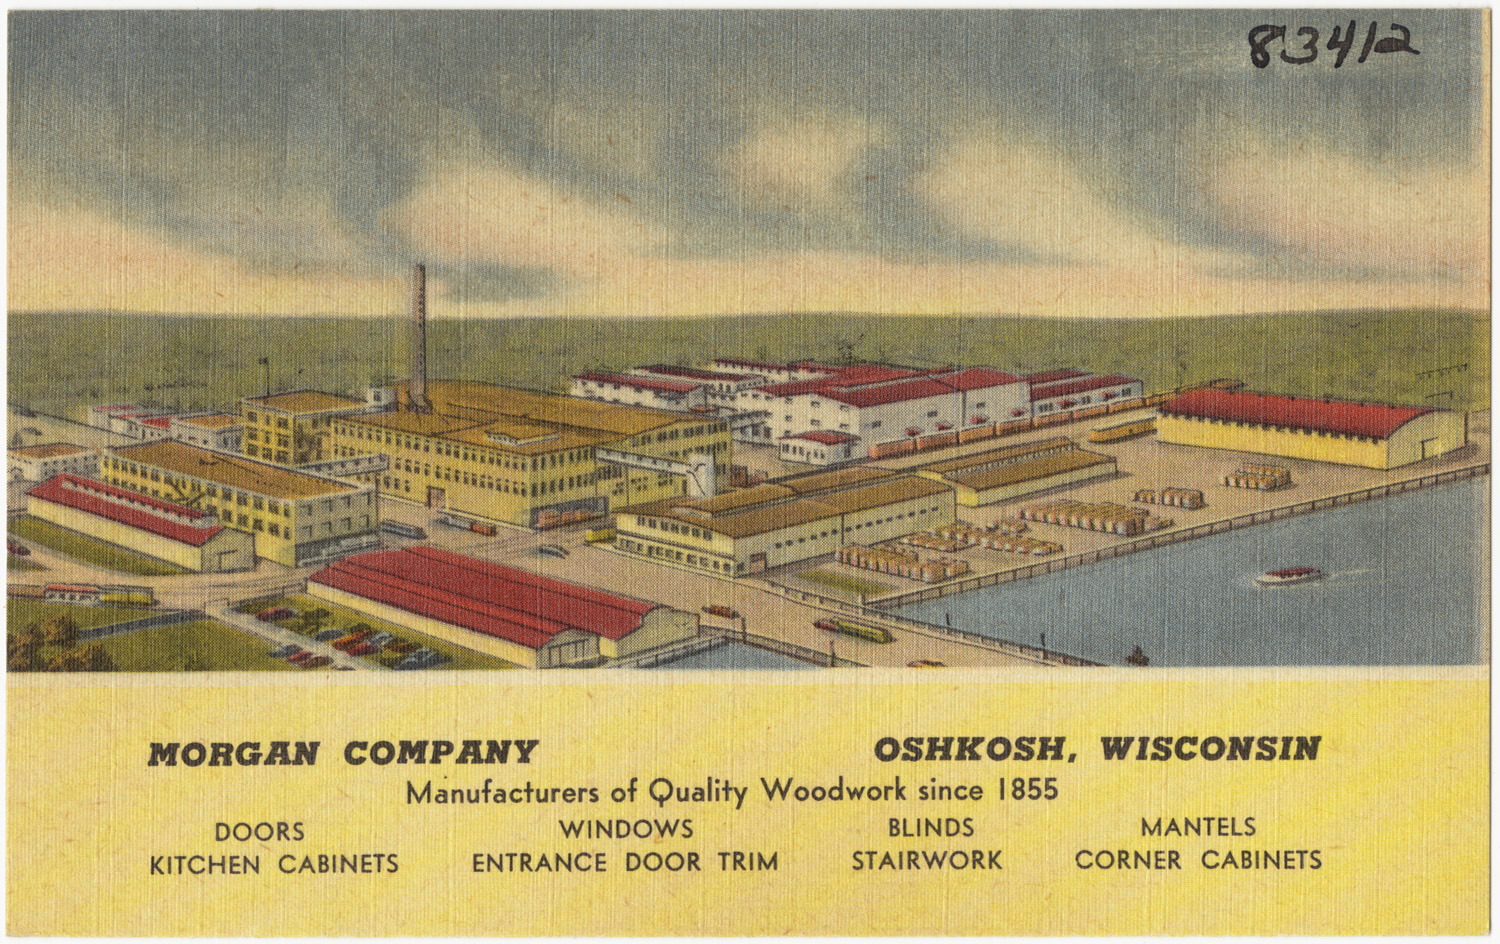 Morgan-Company-Oshkosh-Wisconsin-manufacturers-of-quality-woodwork-since-1855